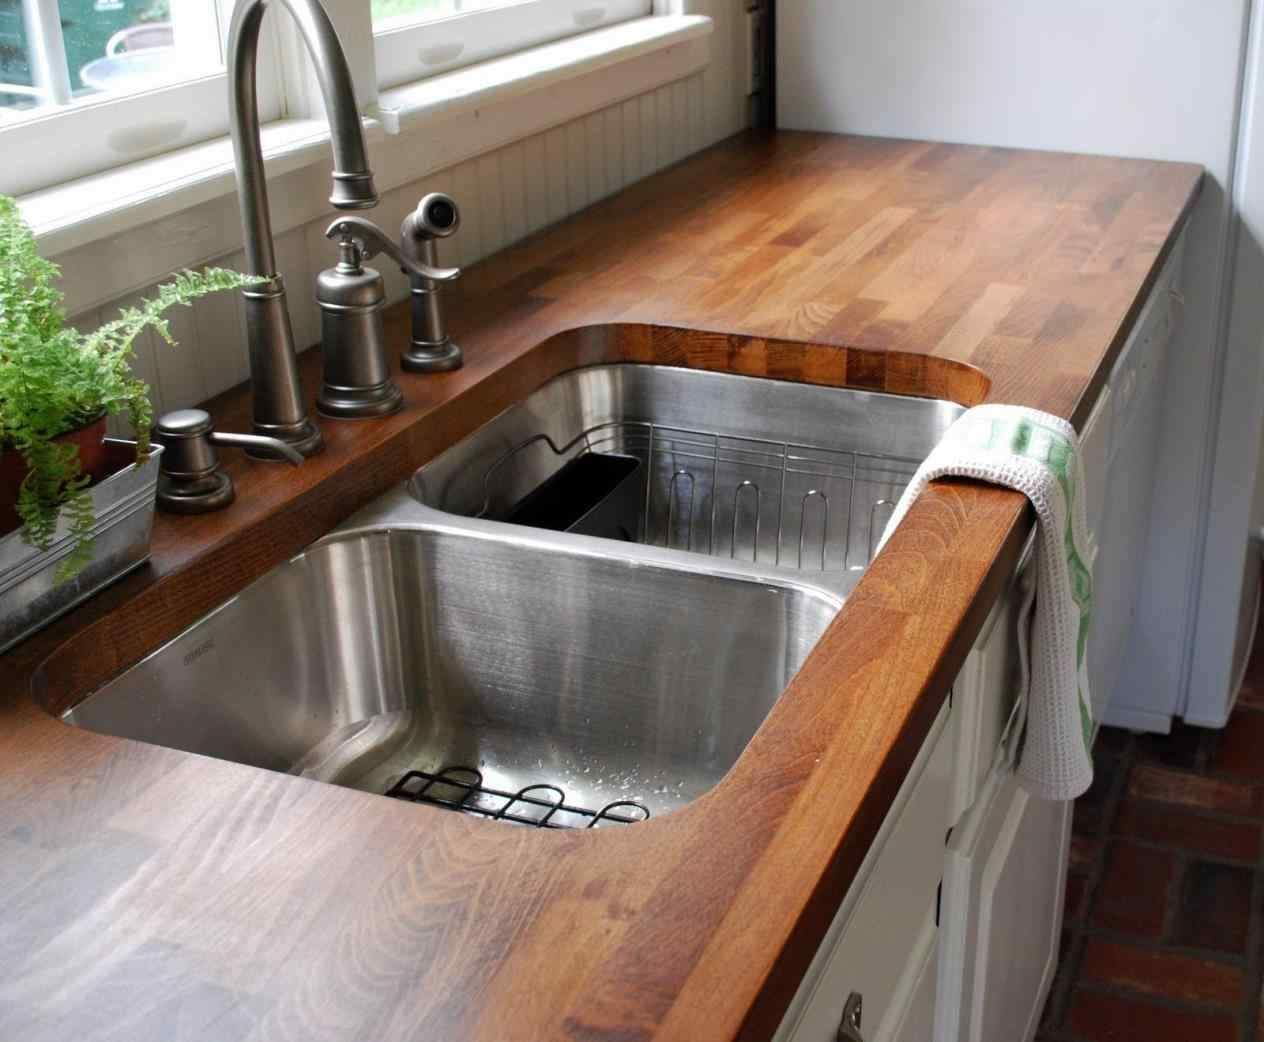 replacing kitchen countertops mobile cart top ideas for on a budget adorable https breakpr